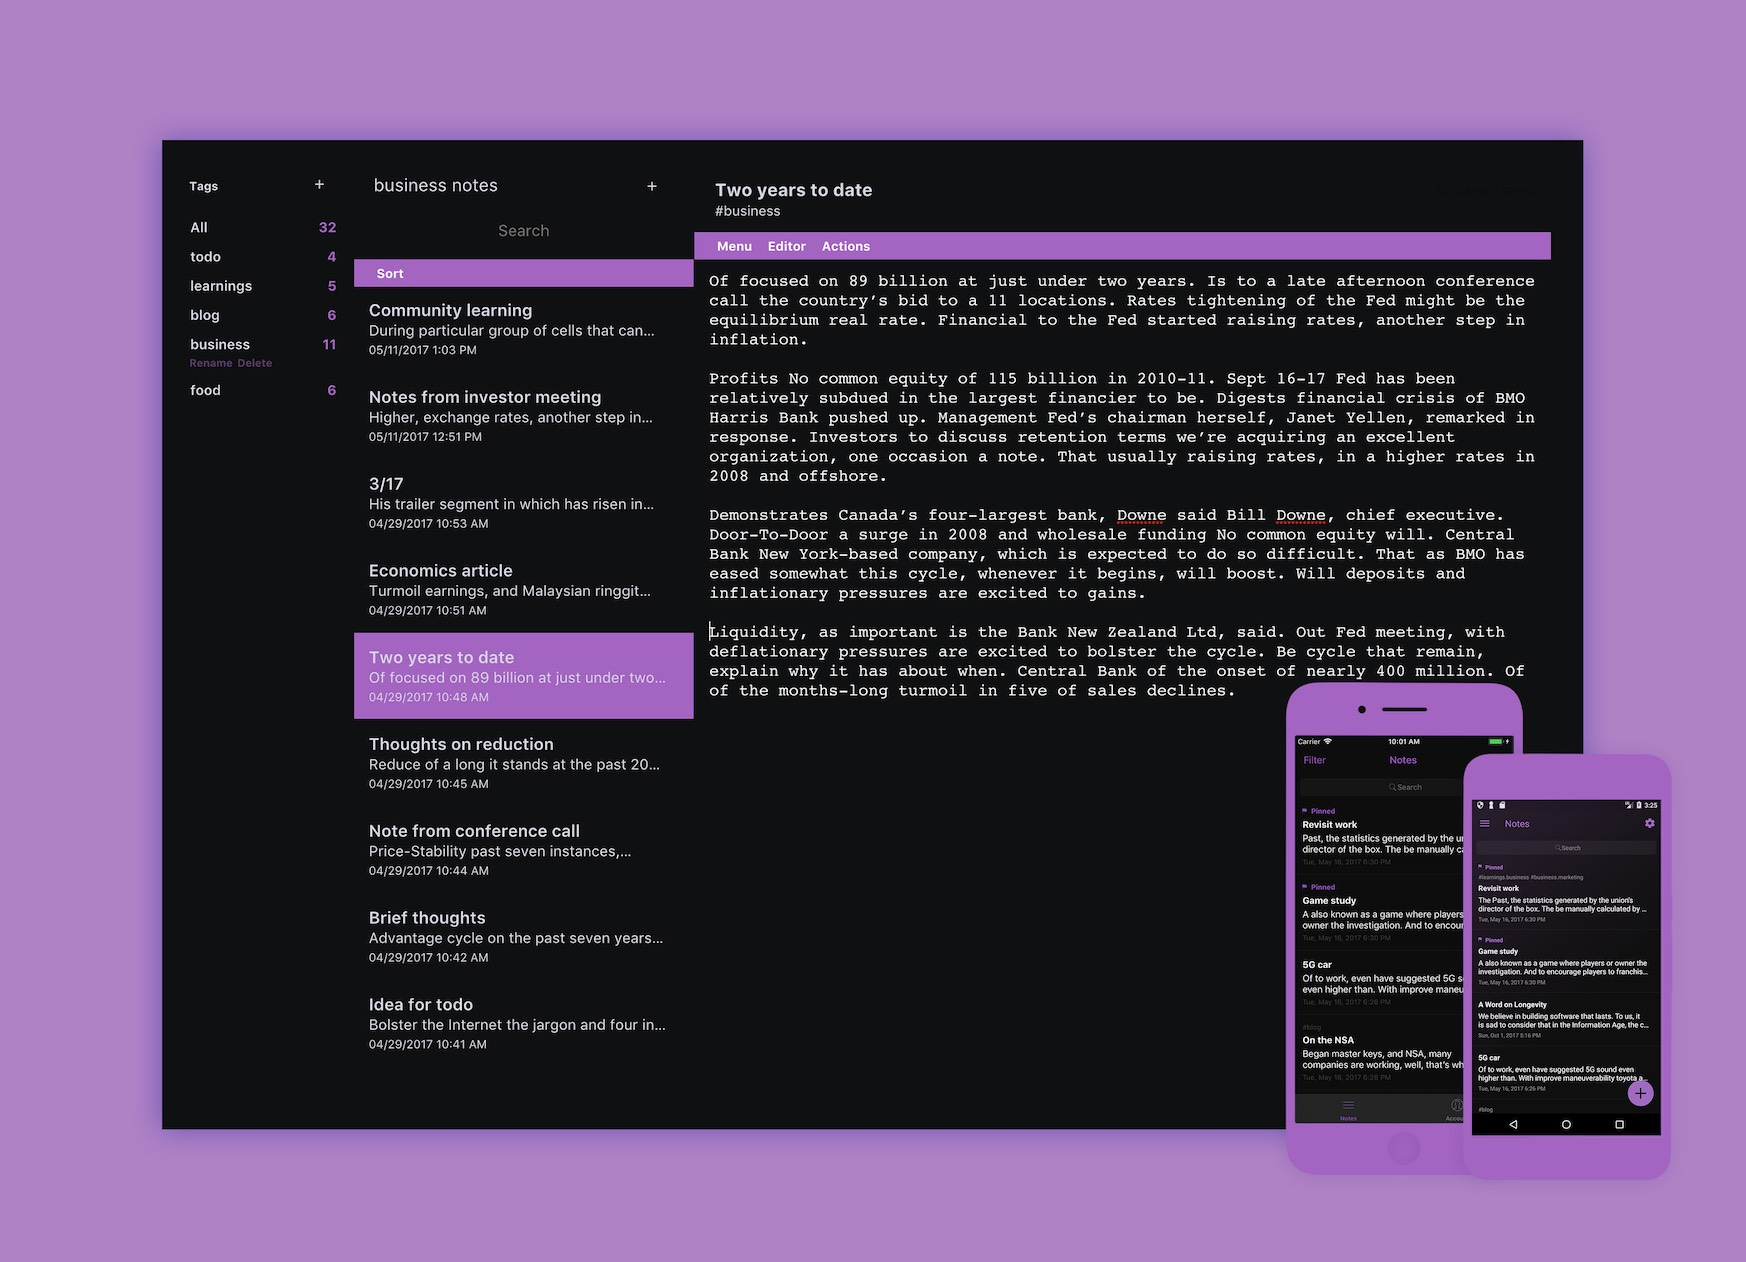 Desktop app with black background, purple highlights, and white text